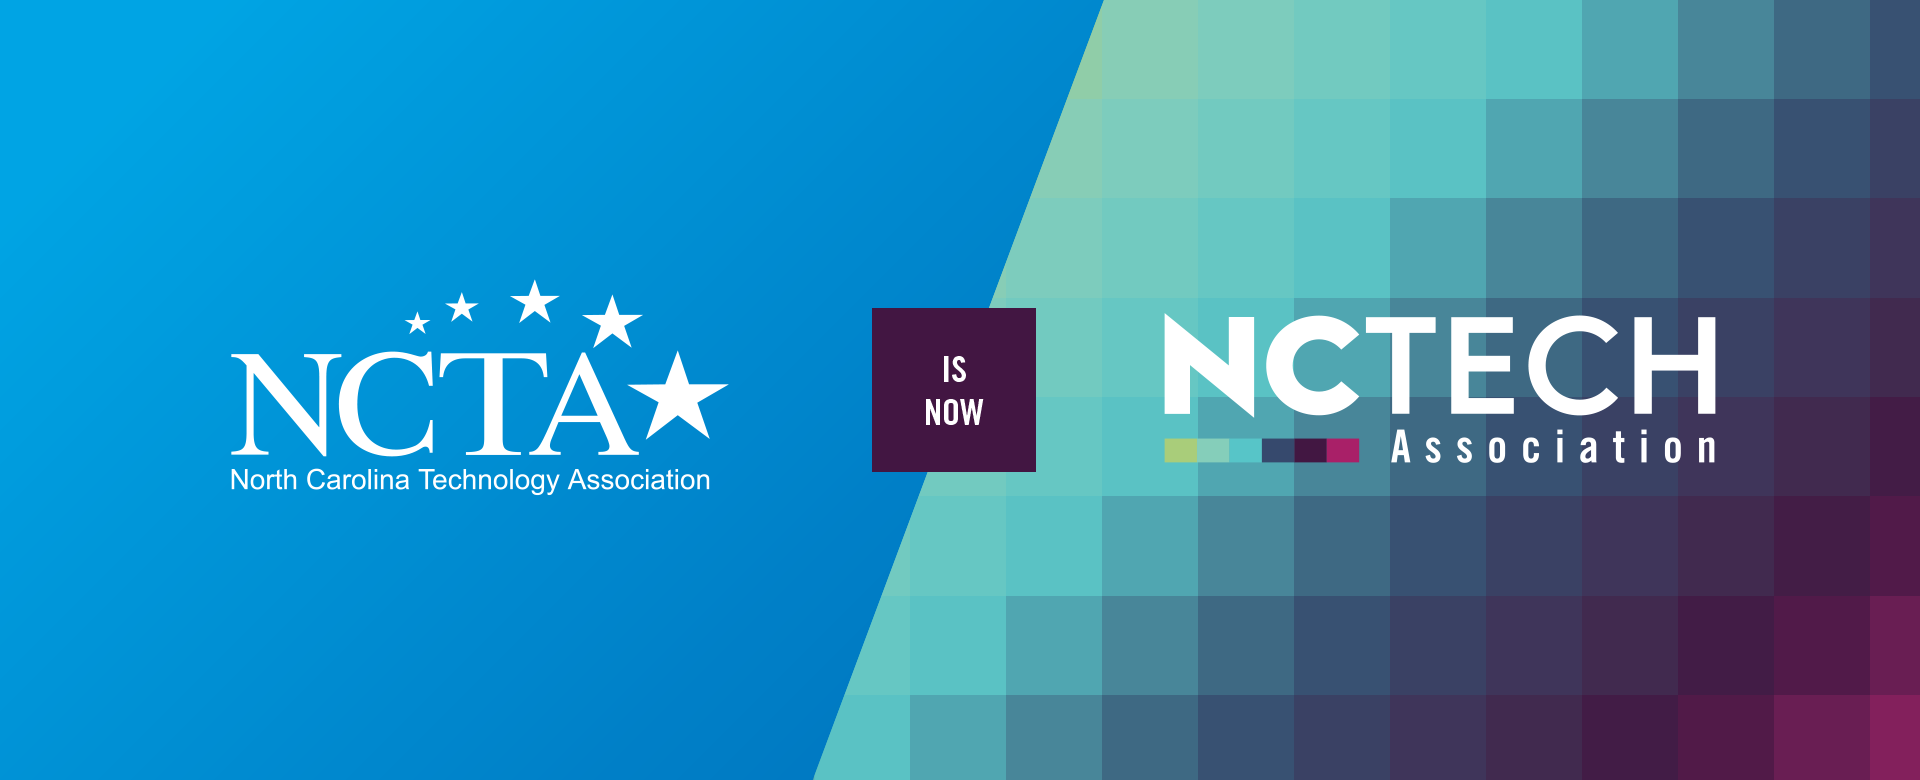 NCTA is now NC Tech Association